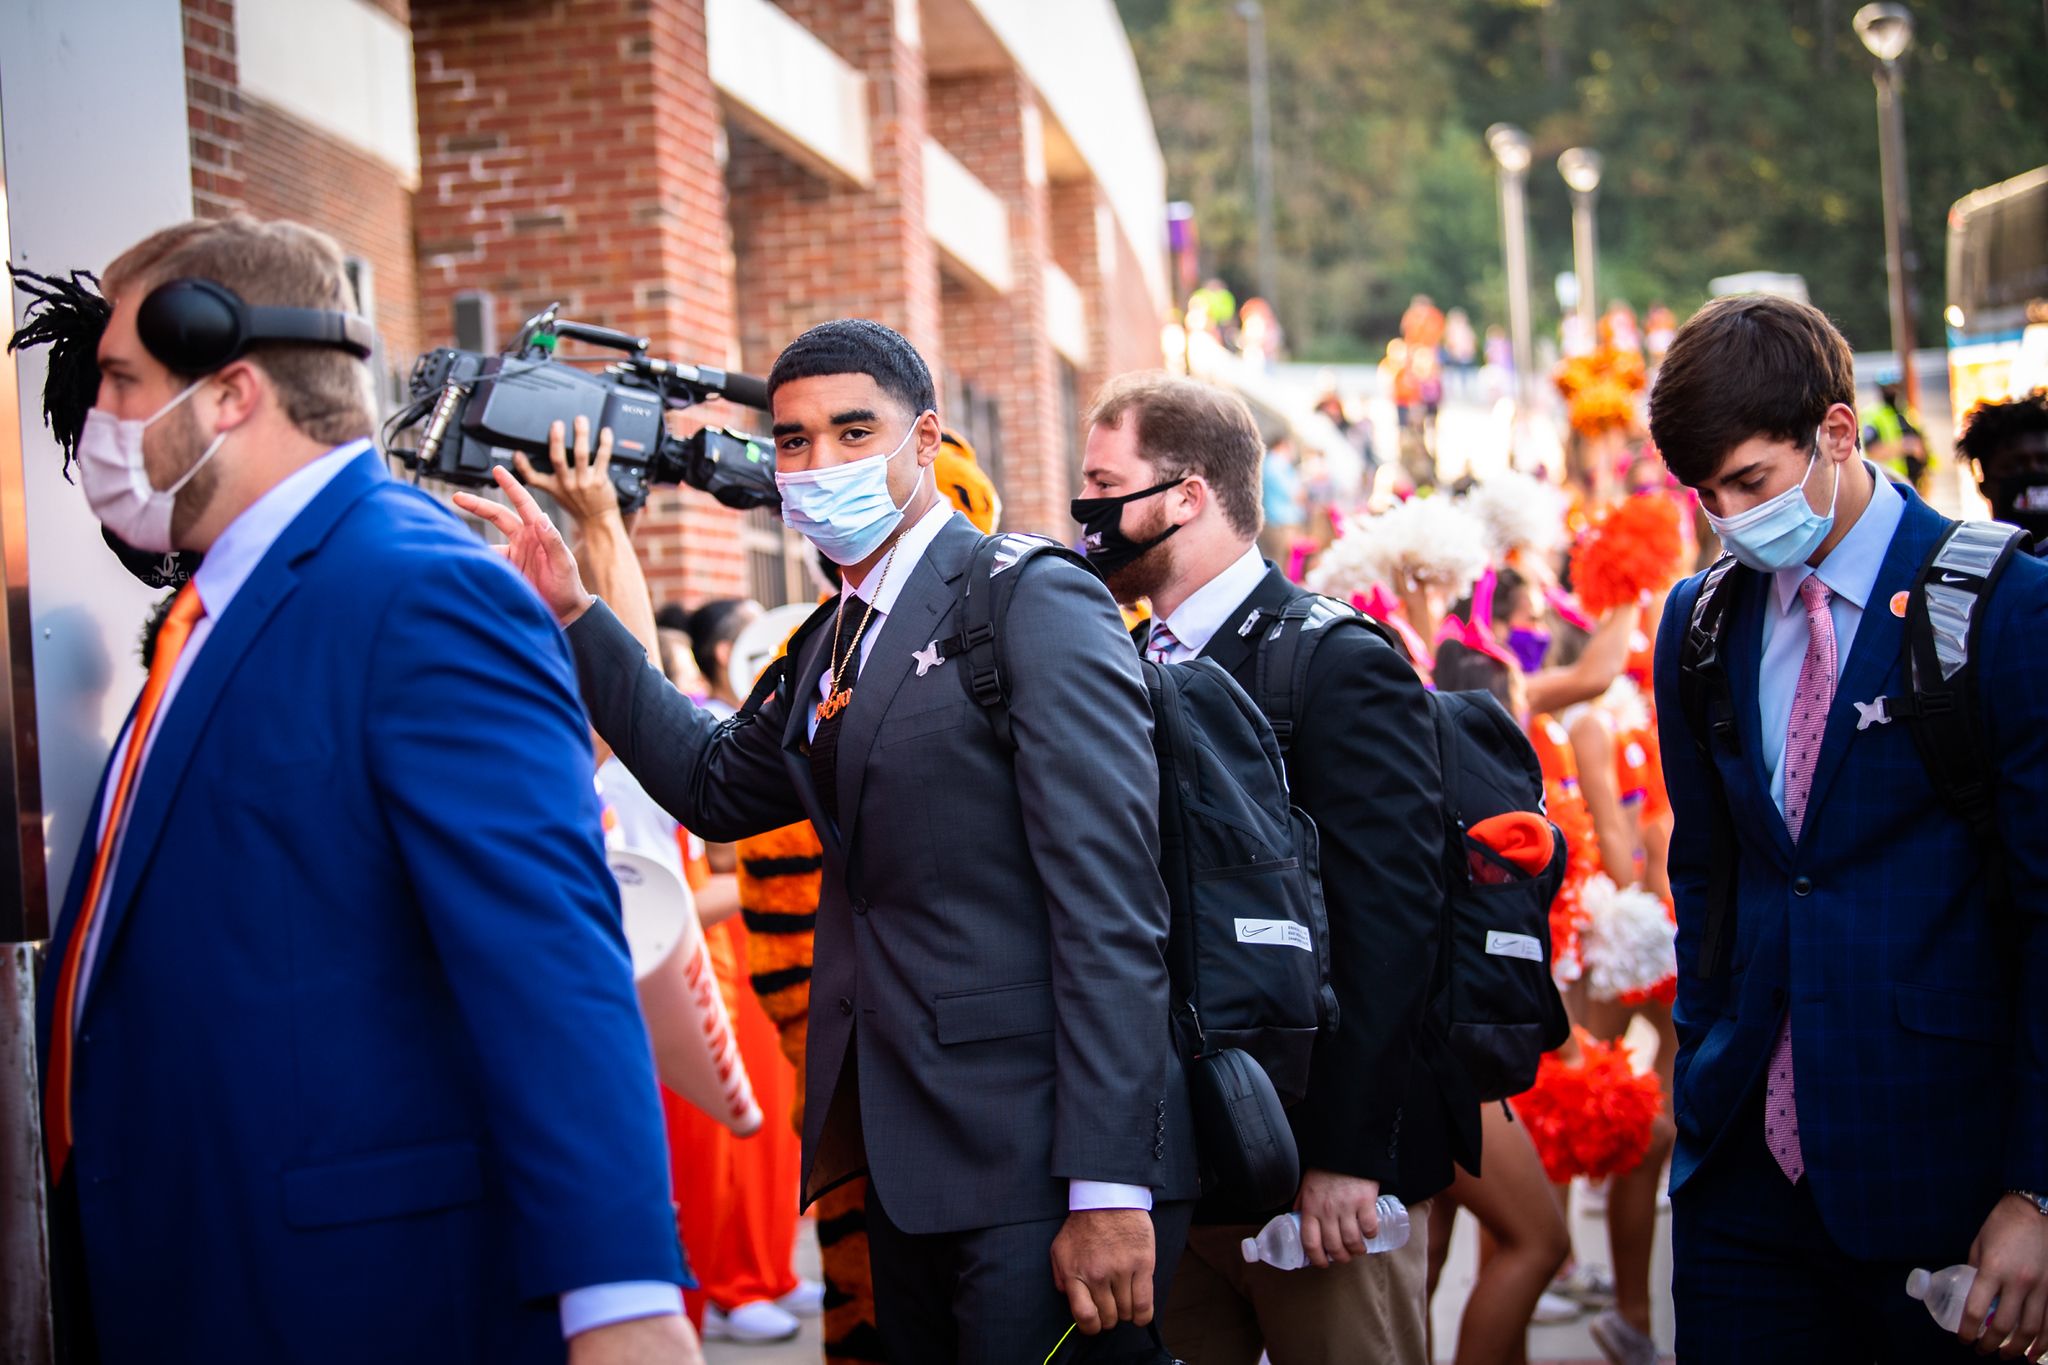 Oct 24, 2020; Clemson, South Carolina, USA;   Clemson players arrive for the Clemson Tiger Walk before their game against Syracuse at Memorial Stadium. Mandatory Credit: Ken Ruinard-USA TODAY Sports